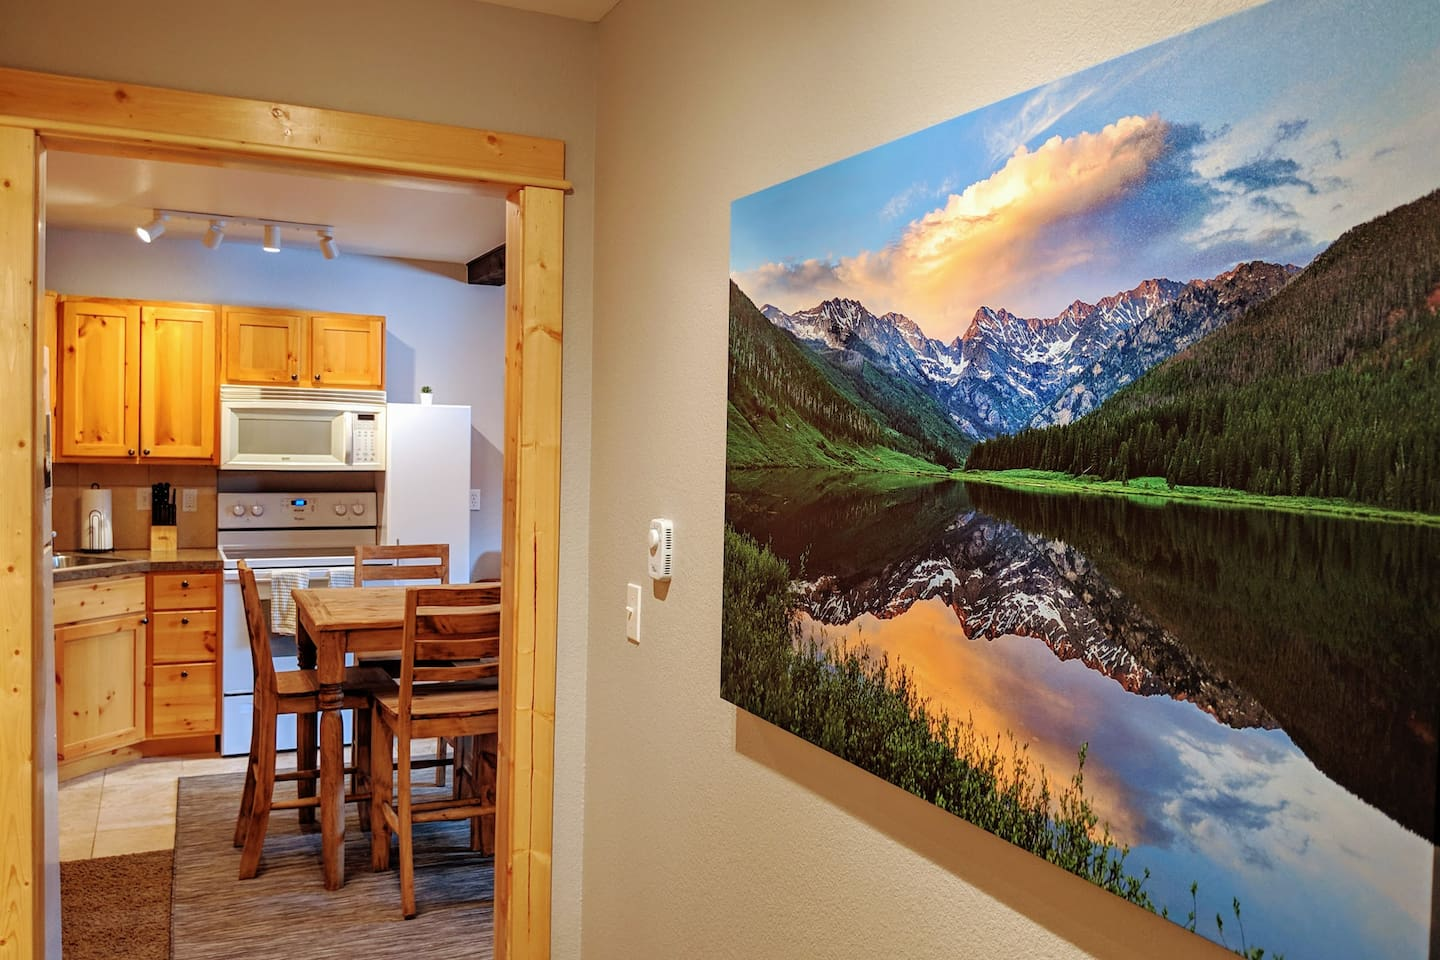 The apartment is 700 square feet, sleeps 4, and is just steps away from the heart of downtown Estes Park!